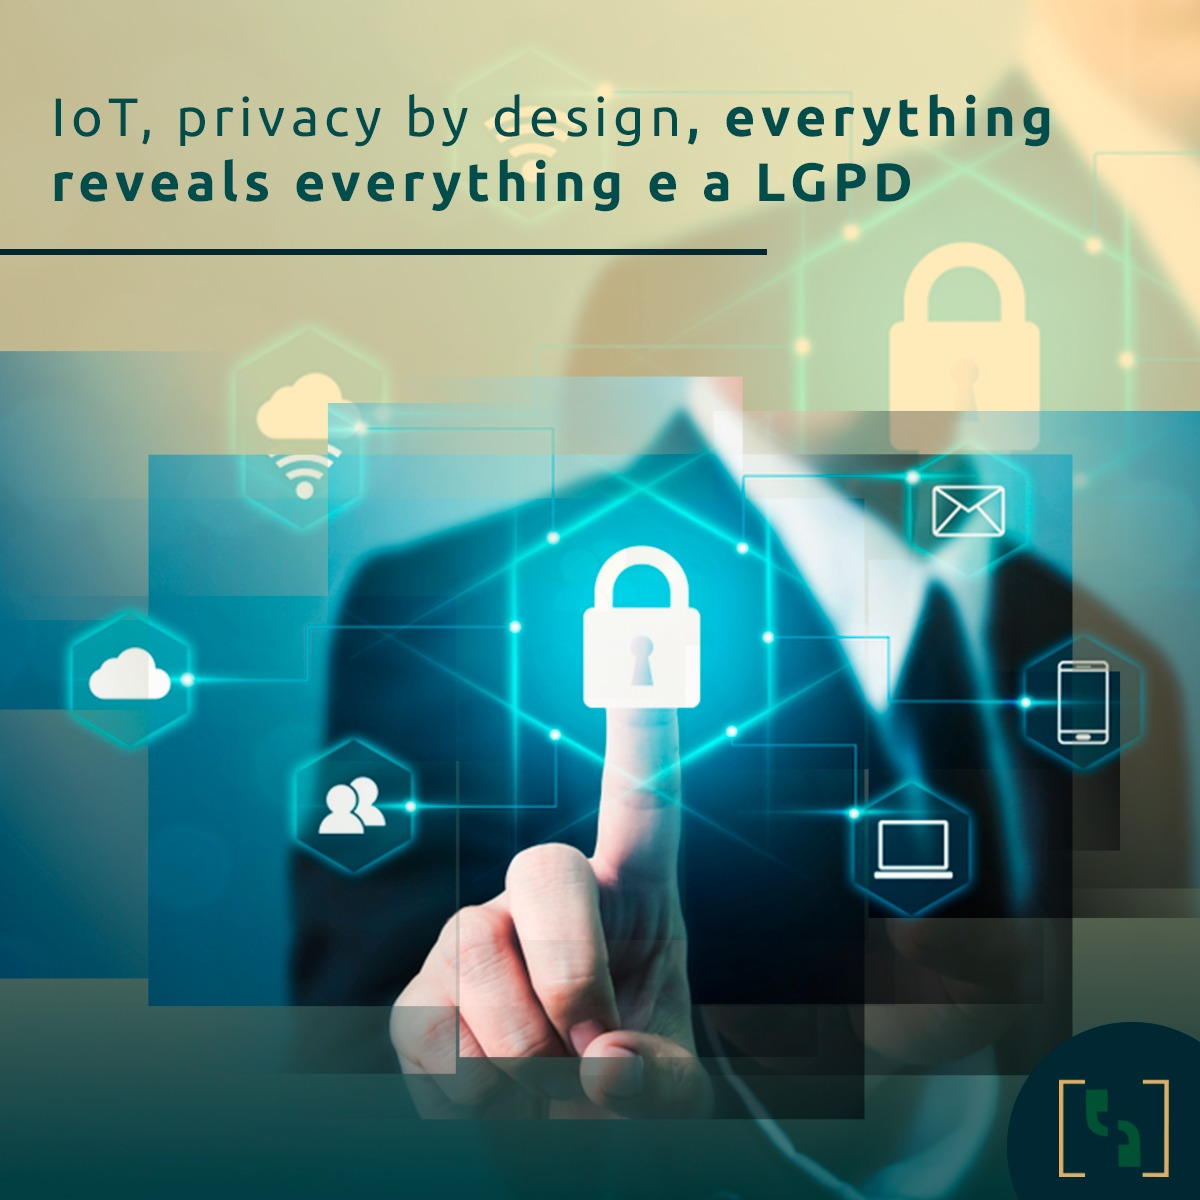 IoT, privacy by design, everything reveals everything e a LGPD